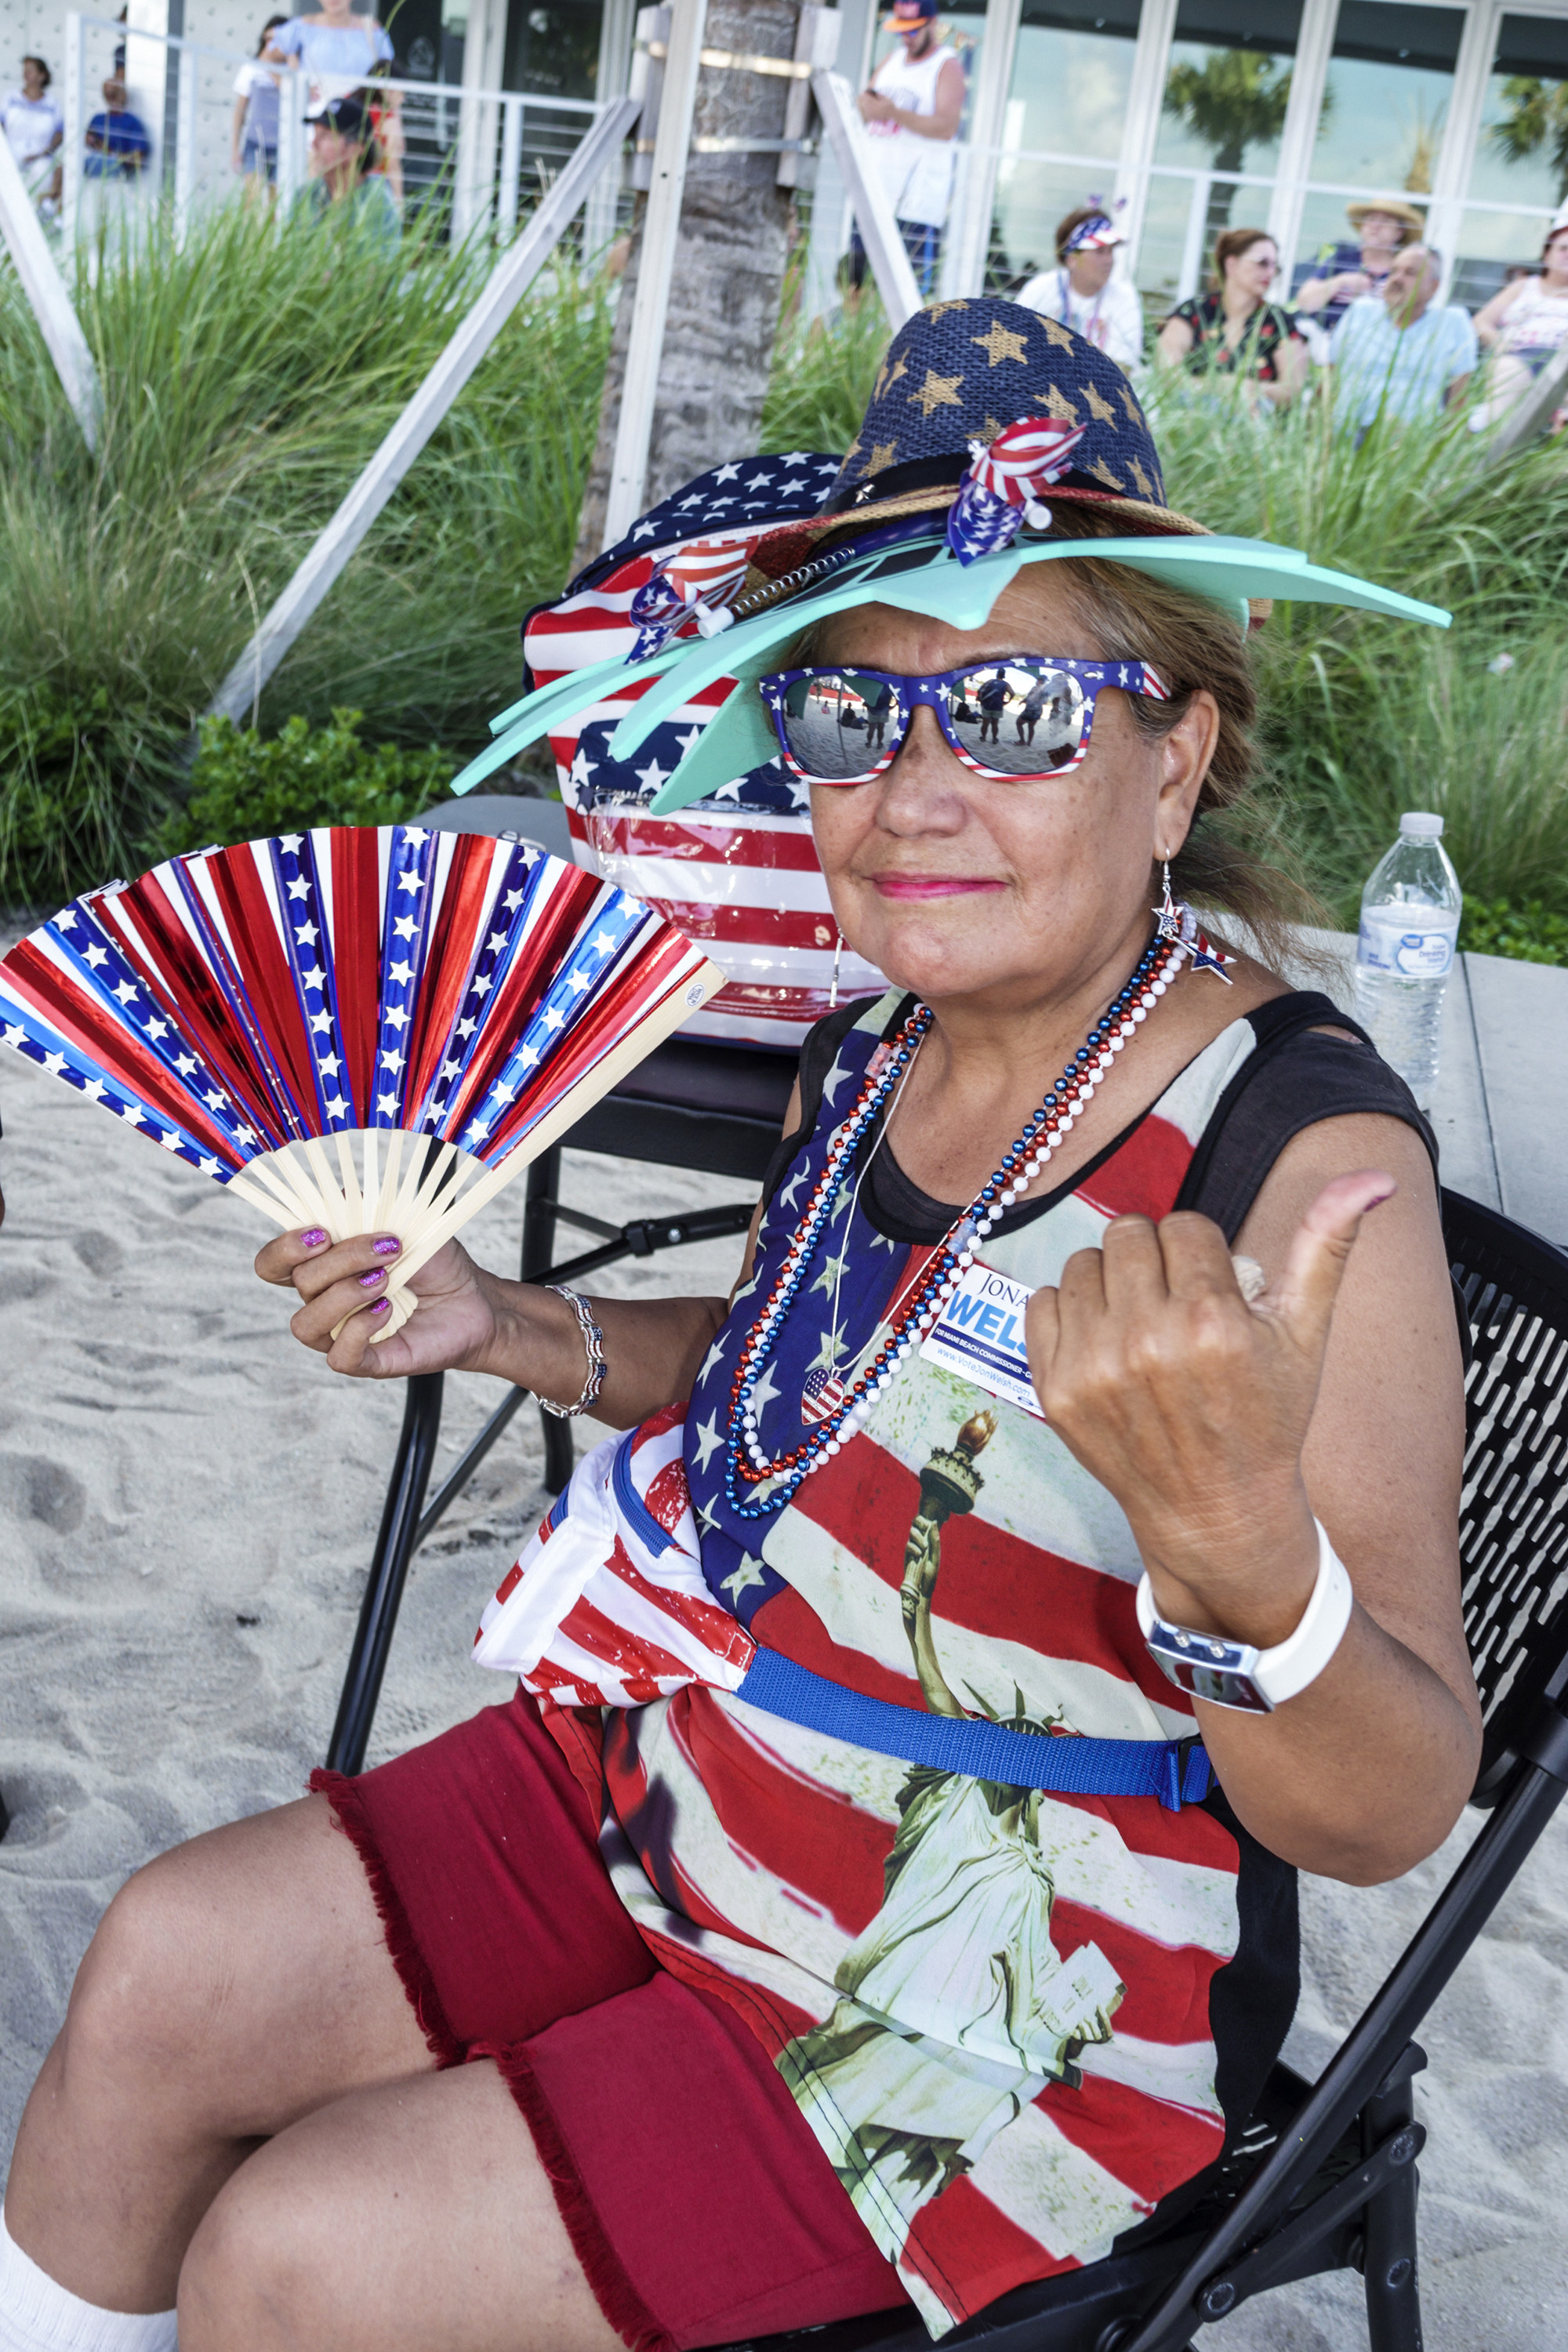 A woman wearing a flag hat with a flag fan and a flag shirt